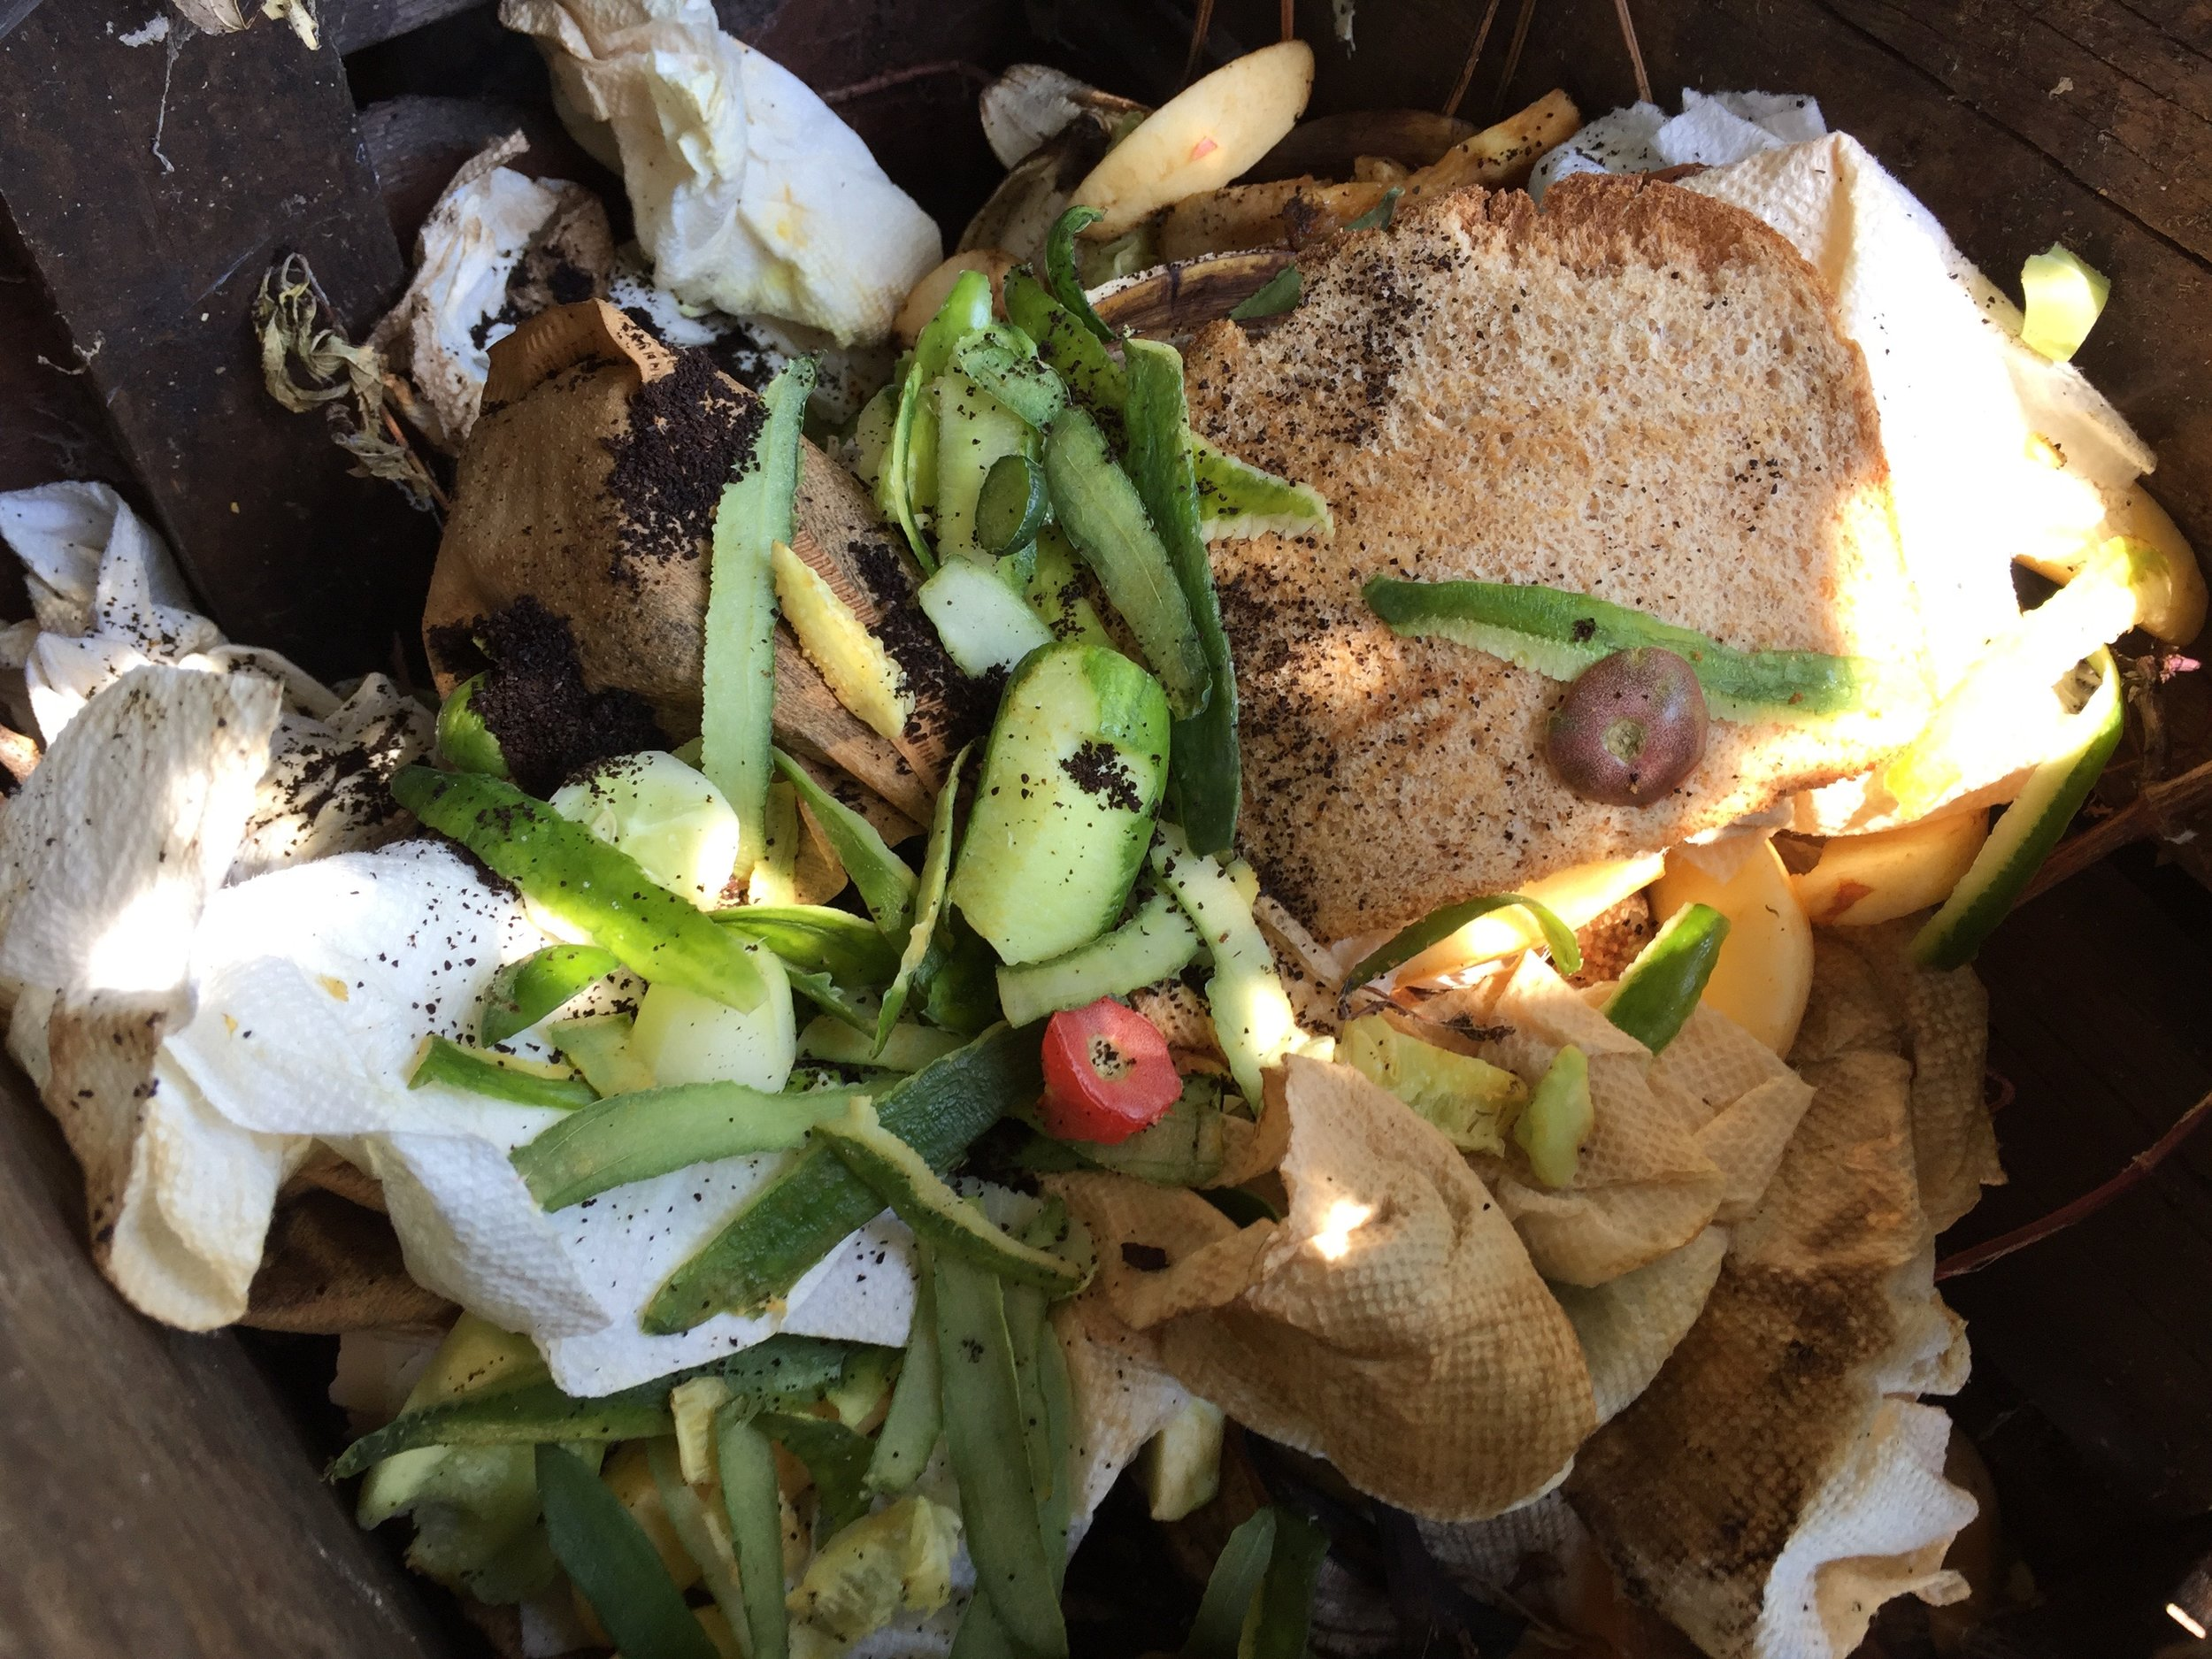 At the top of the worm compost bin: cucumber peelings, a heel of bread, coffee grounds and filters, paper towels, some apple bits that went bad, and tomato cores.